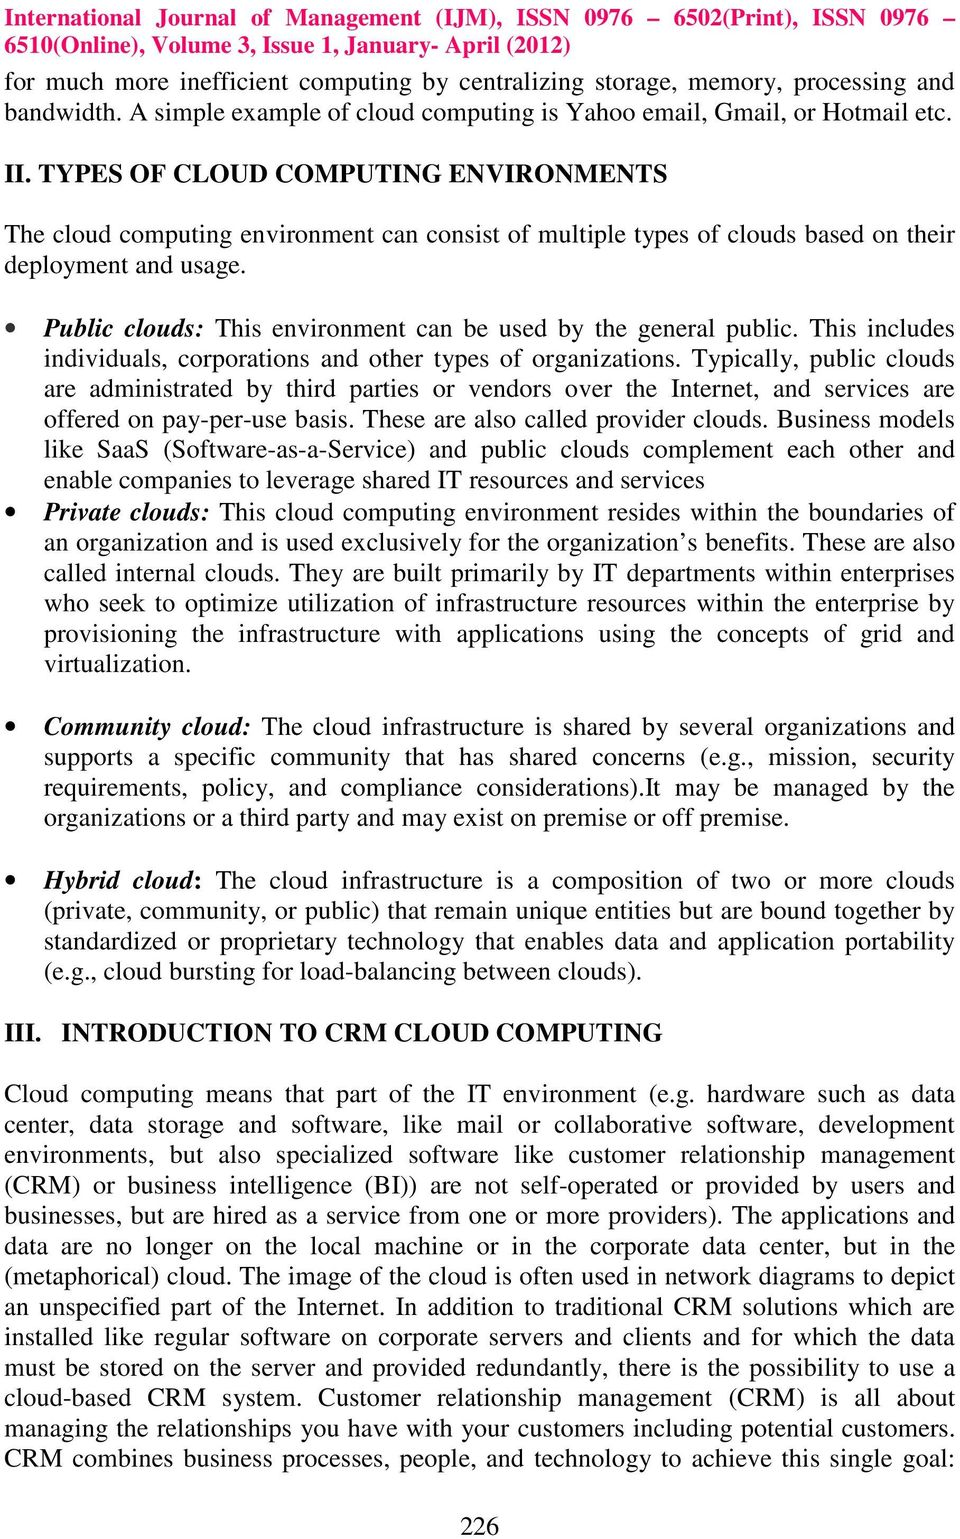 Public clouds: This environment can be used by the general public. This includes individuals, corporations and other types of organizations.